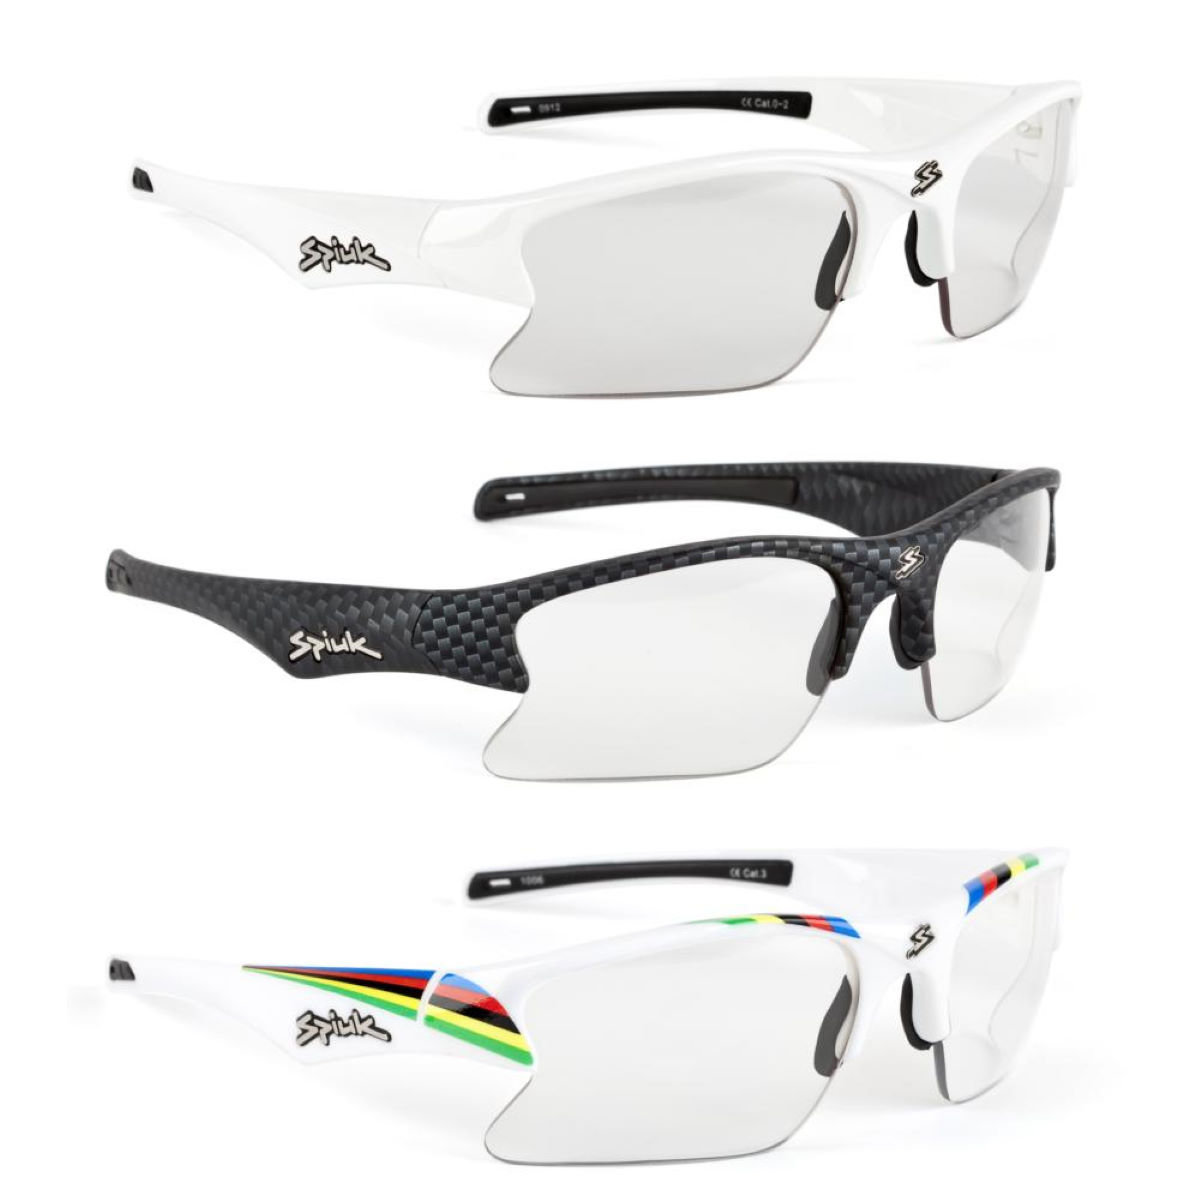 Spiuk Torsion Lumiris II Sunglasses